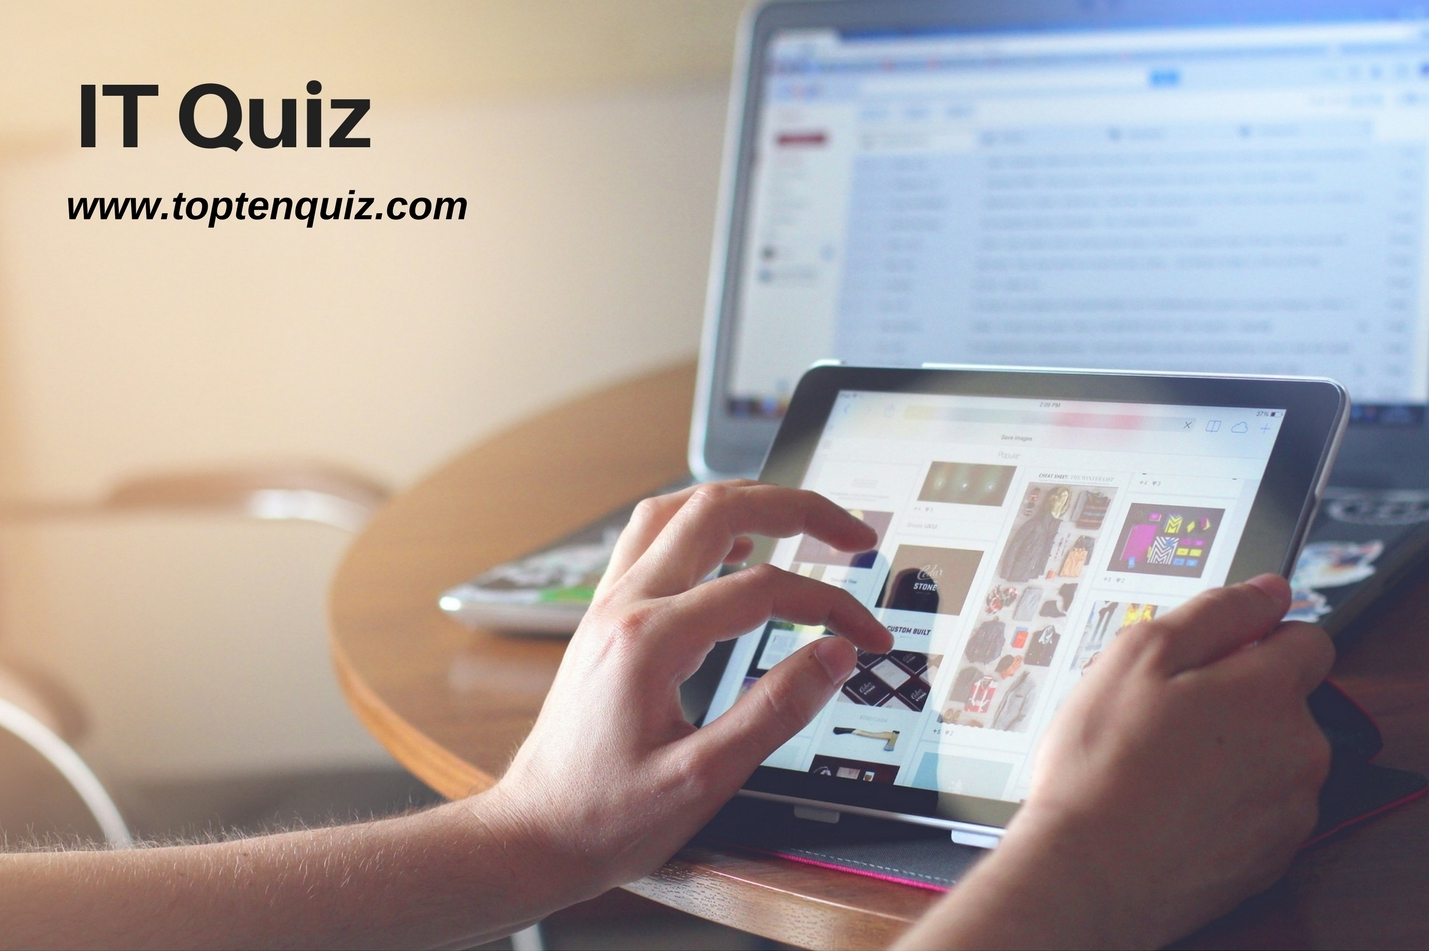 Information Technology Quiz - IT Quiz